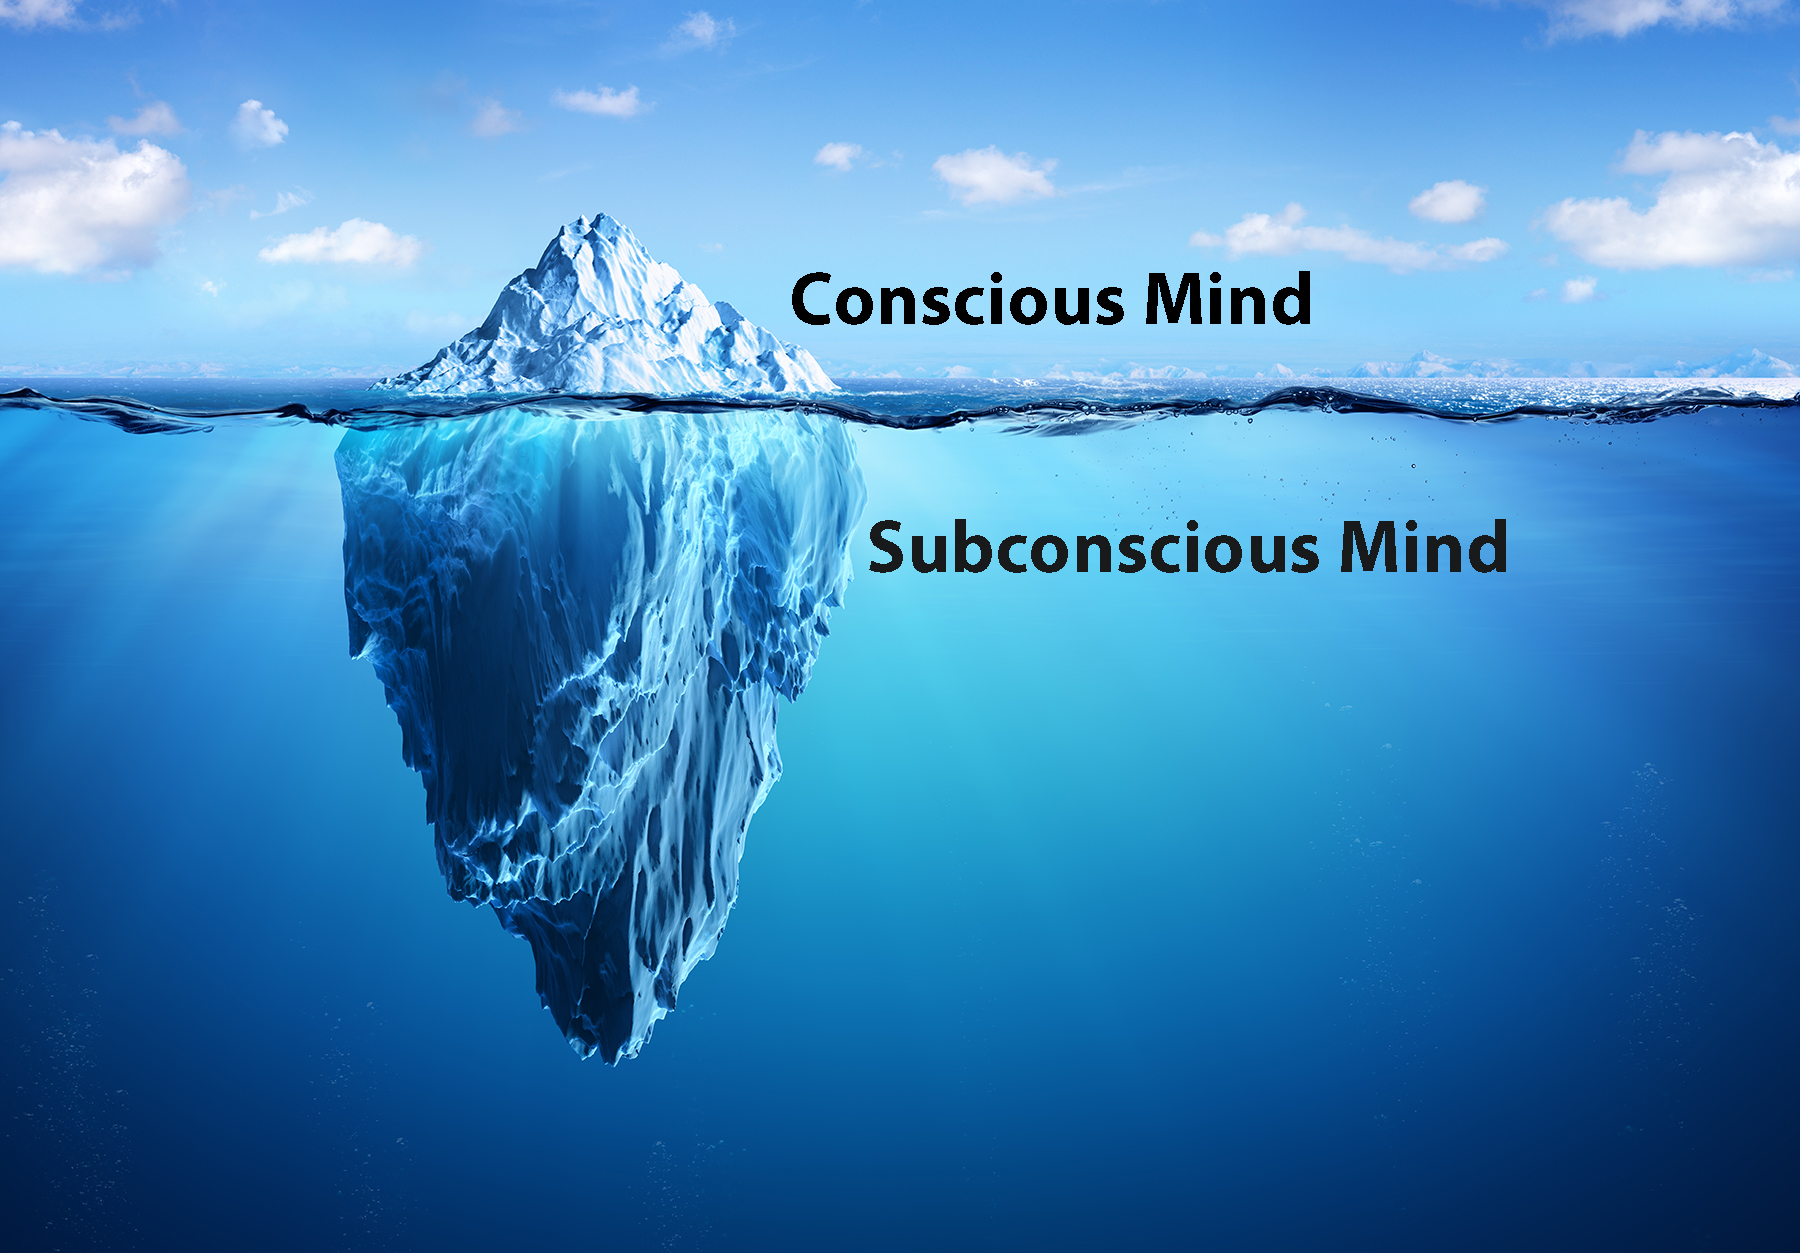 The Power Of The Subconscious